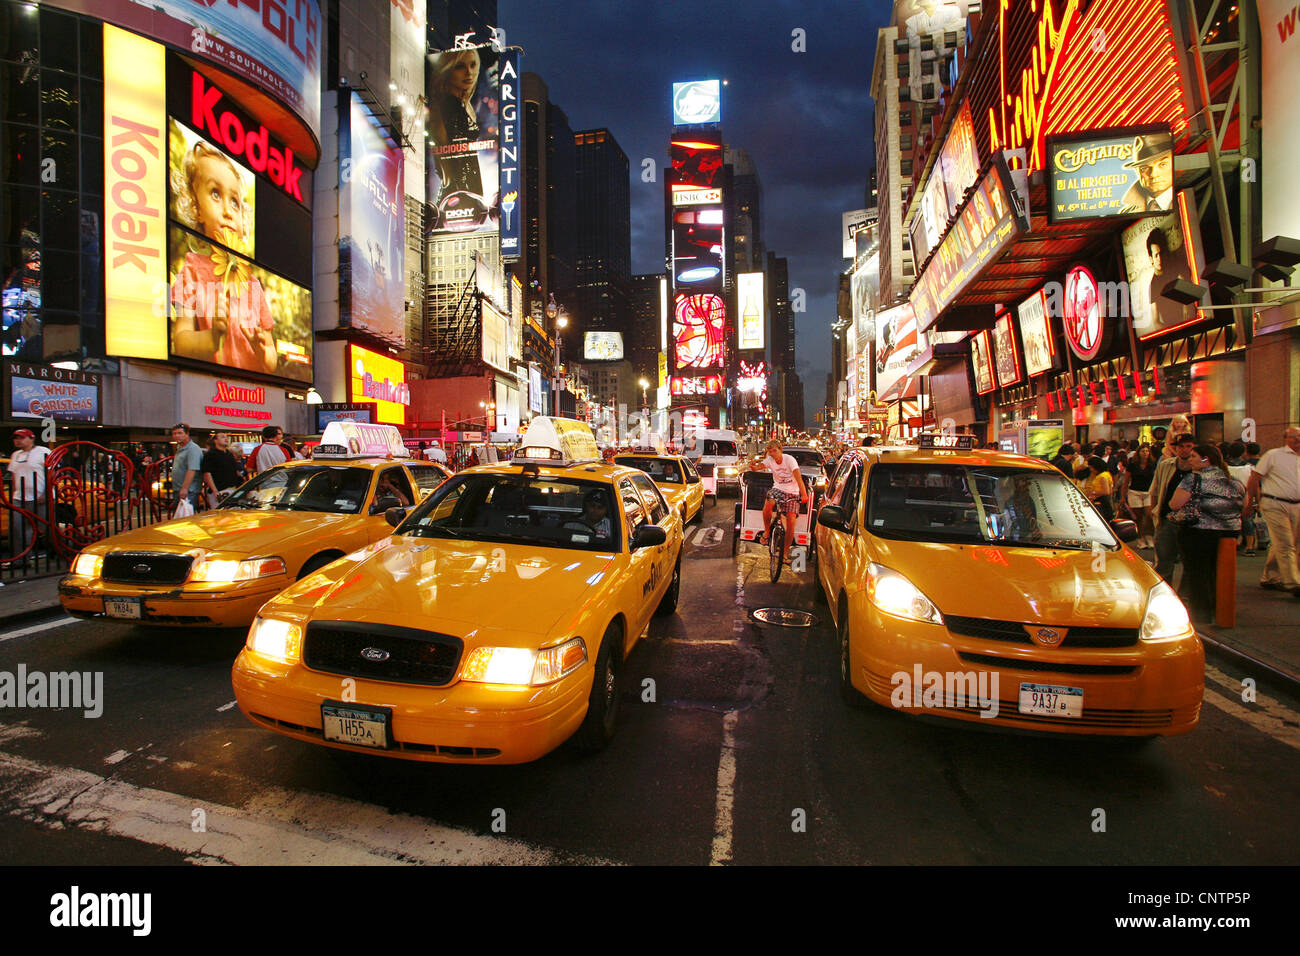 Yellow Taxicabs on Times Square, New York City, USA - Stock Image